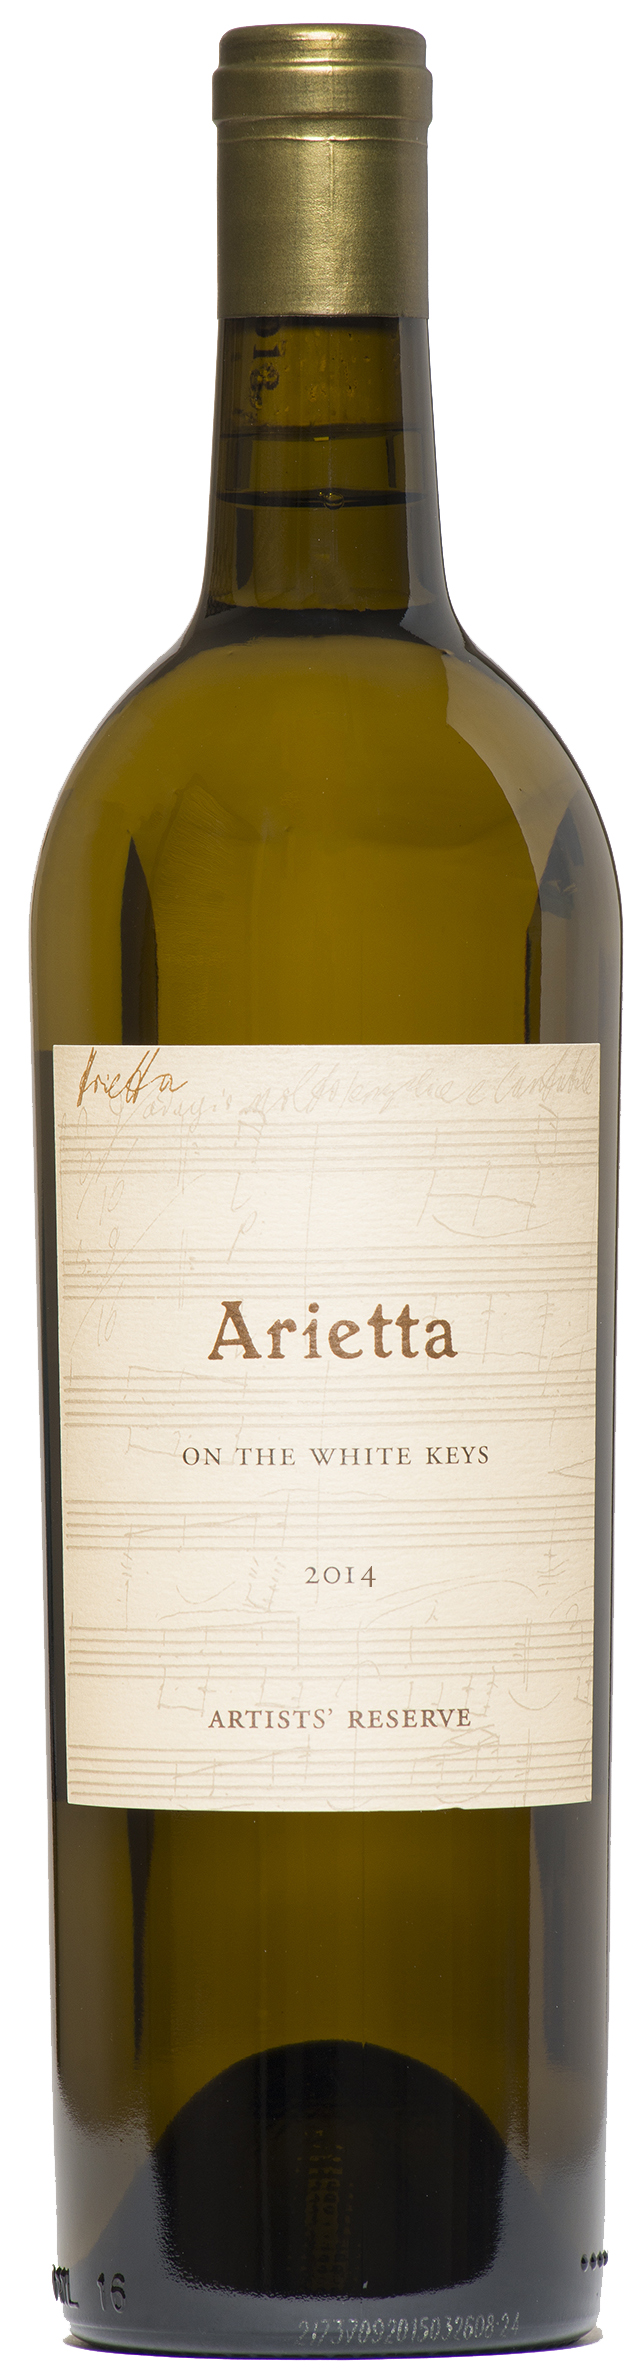 Arietta White Wine On the White Keys Artists Reserve 2014